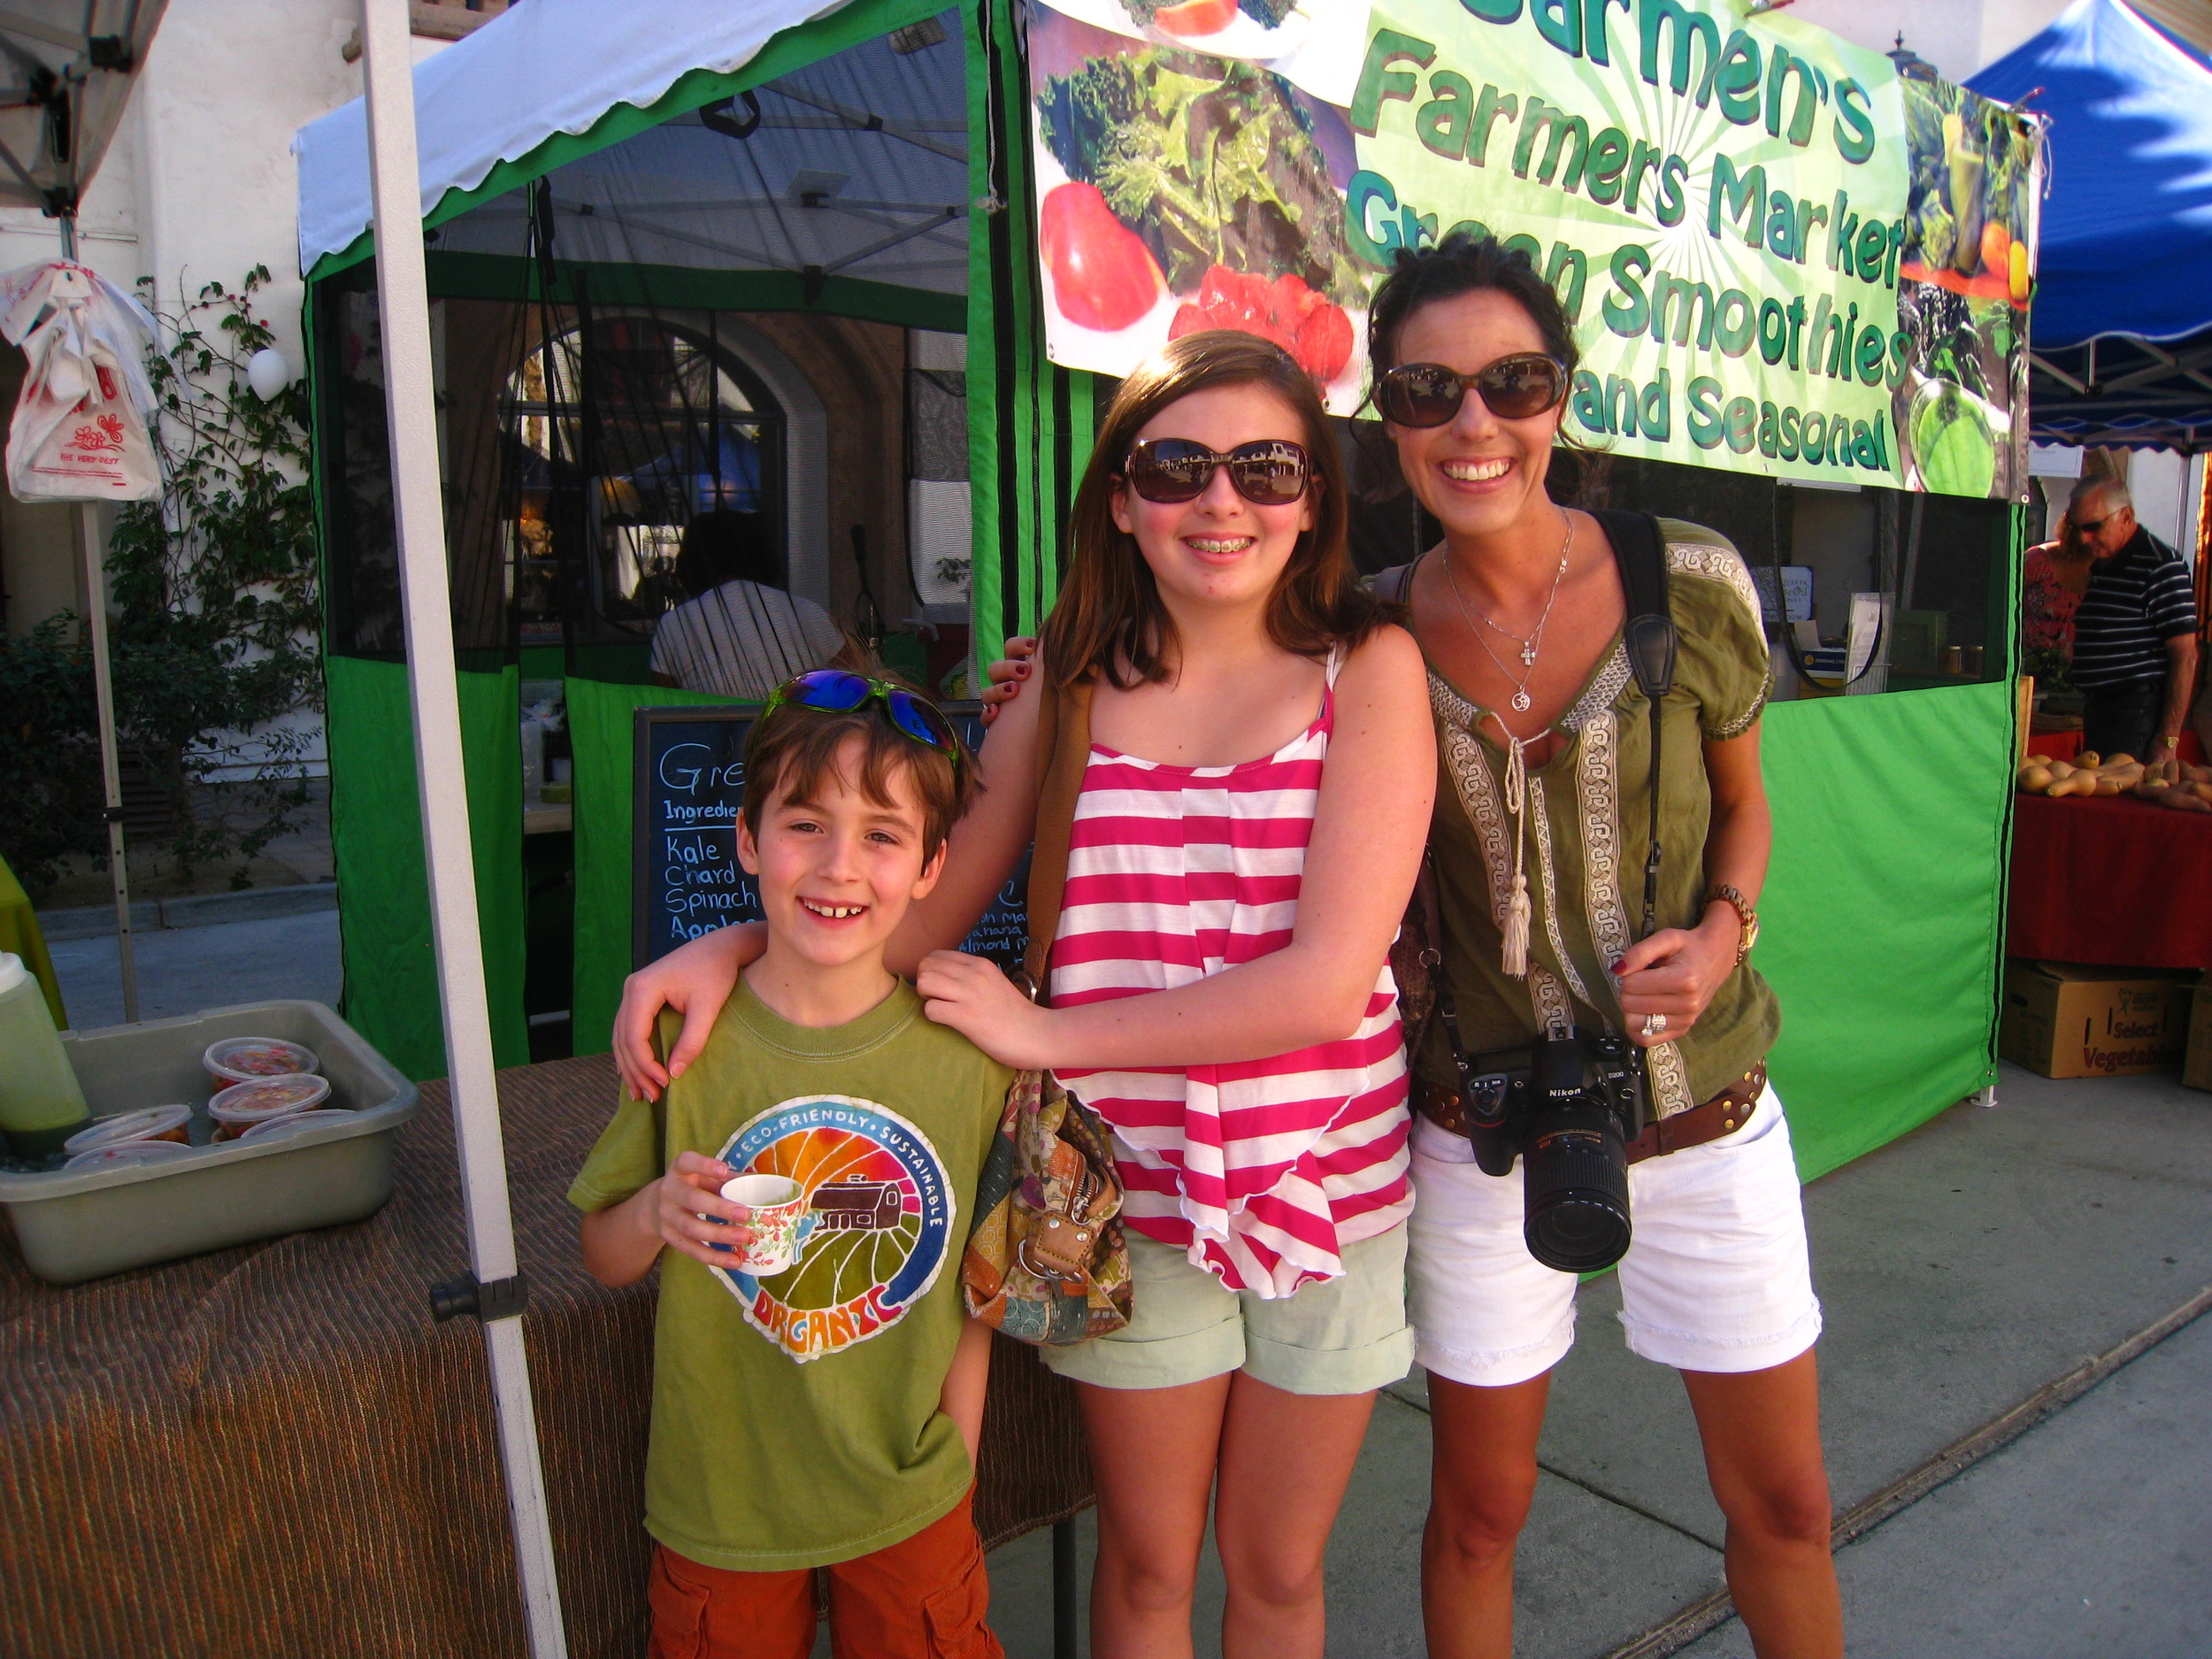 Visiting farmers markets can also be fun on vacations. This is a market in Palm Springs, Ca.